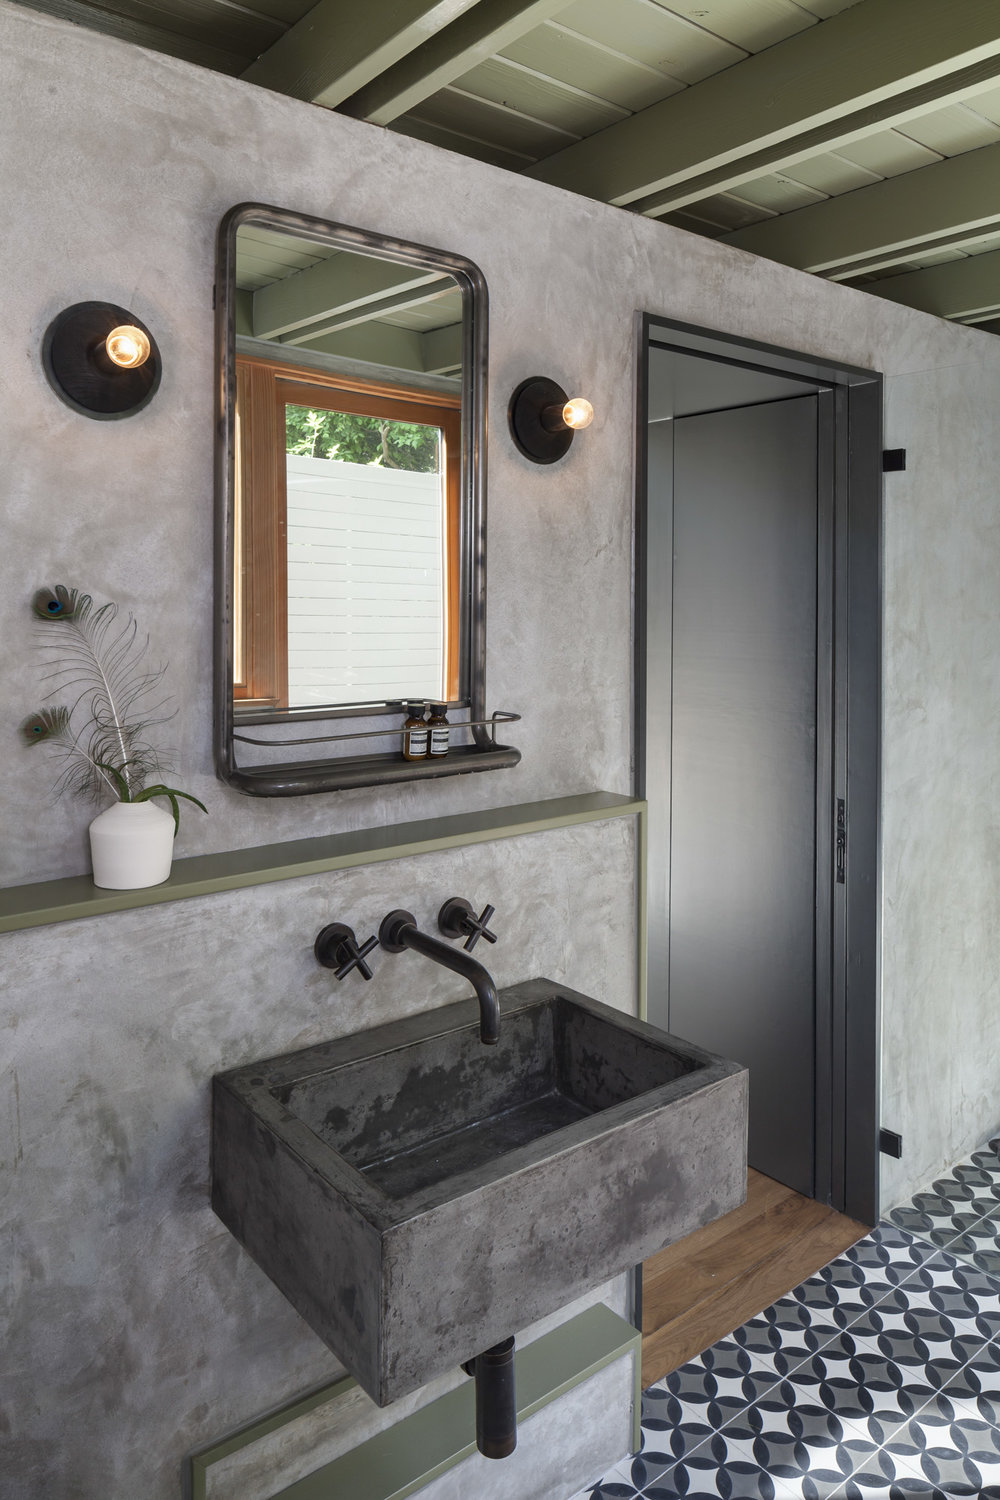 Elizabeth-Baird-Architecture-Garner Pool and Casita- casita bathroom sink.jpg